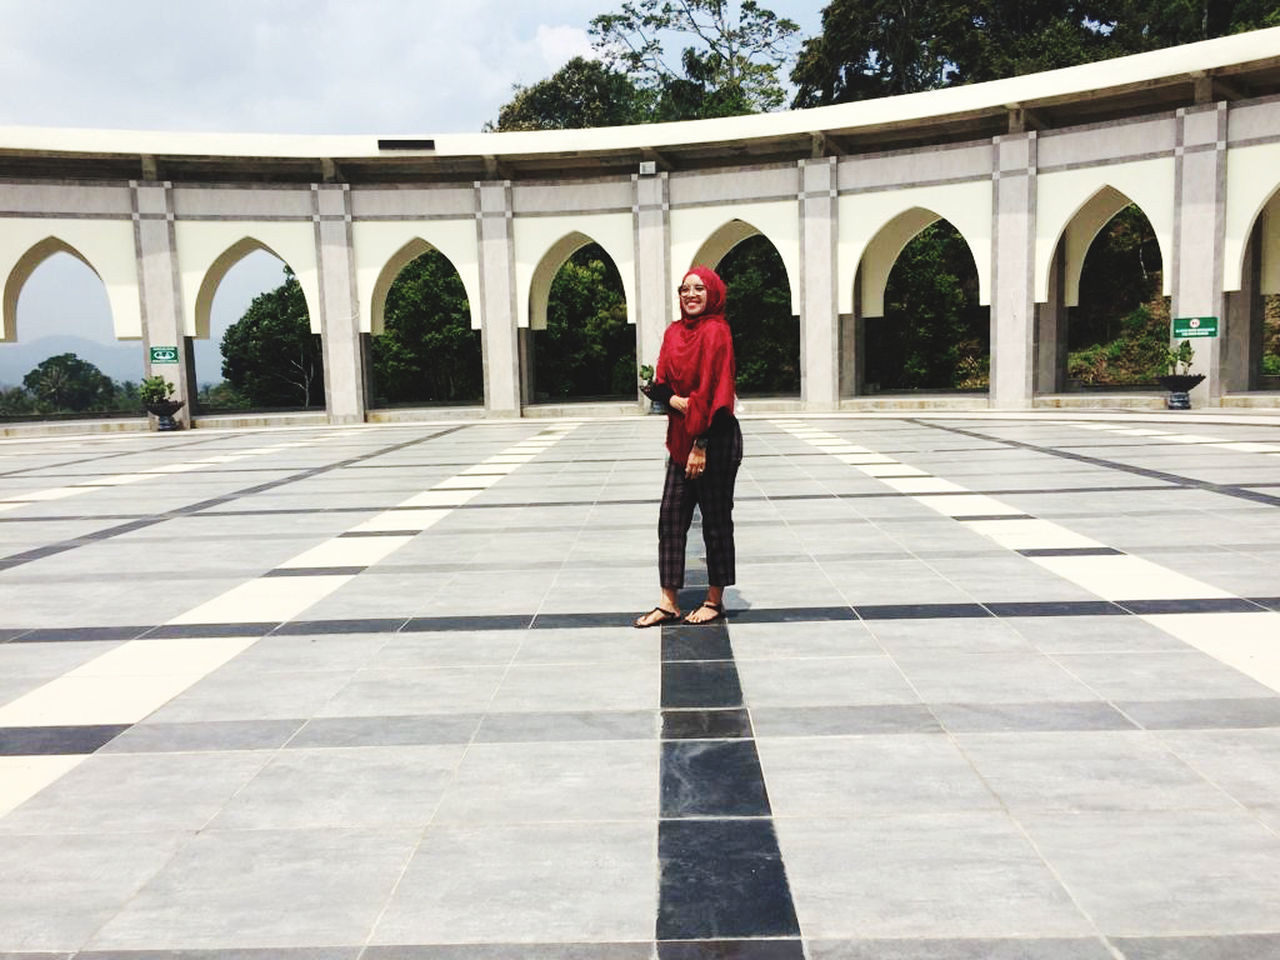 full length, architecture, one person, real people, arch, built structure, lifestyles, standing, day, rear view, walking, casual clothing, leisure activity, women, adult, red, clothing, tiled floor, nature, outdoors, architectural column, warm clothing